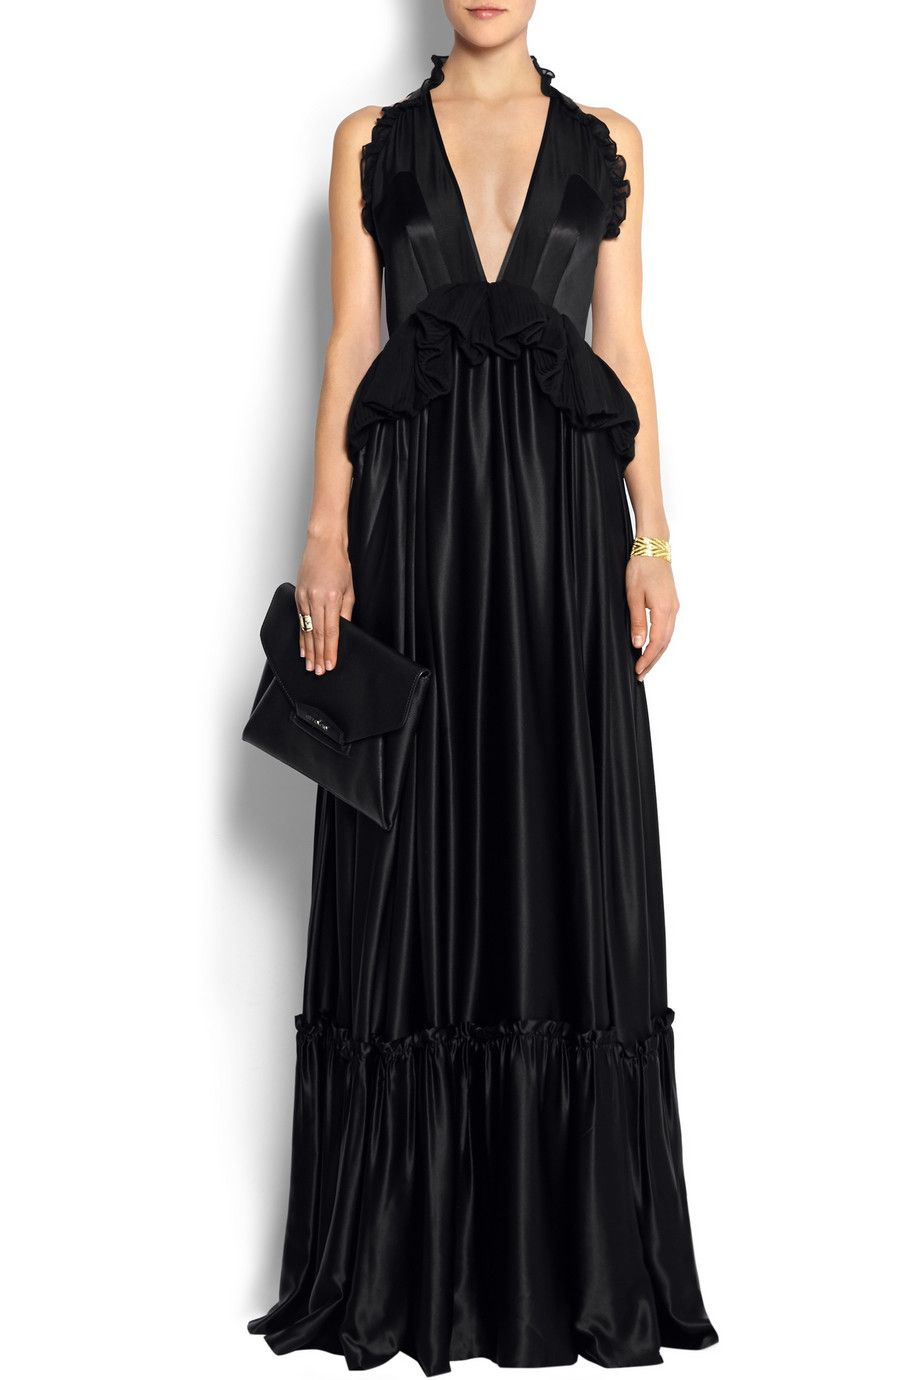 27310685513 I LOVE THIS DRESS!!! Givenchy